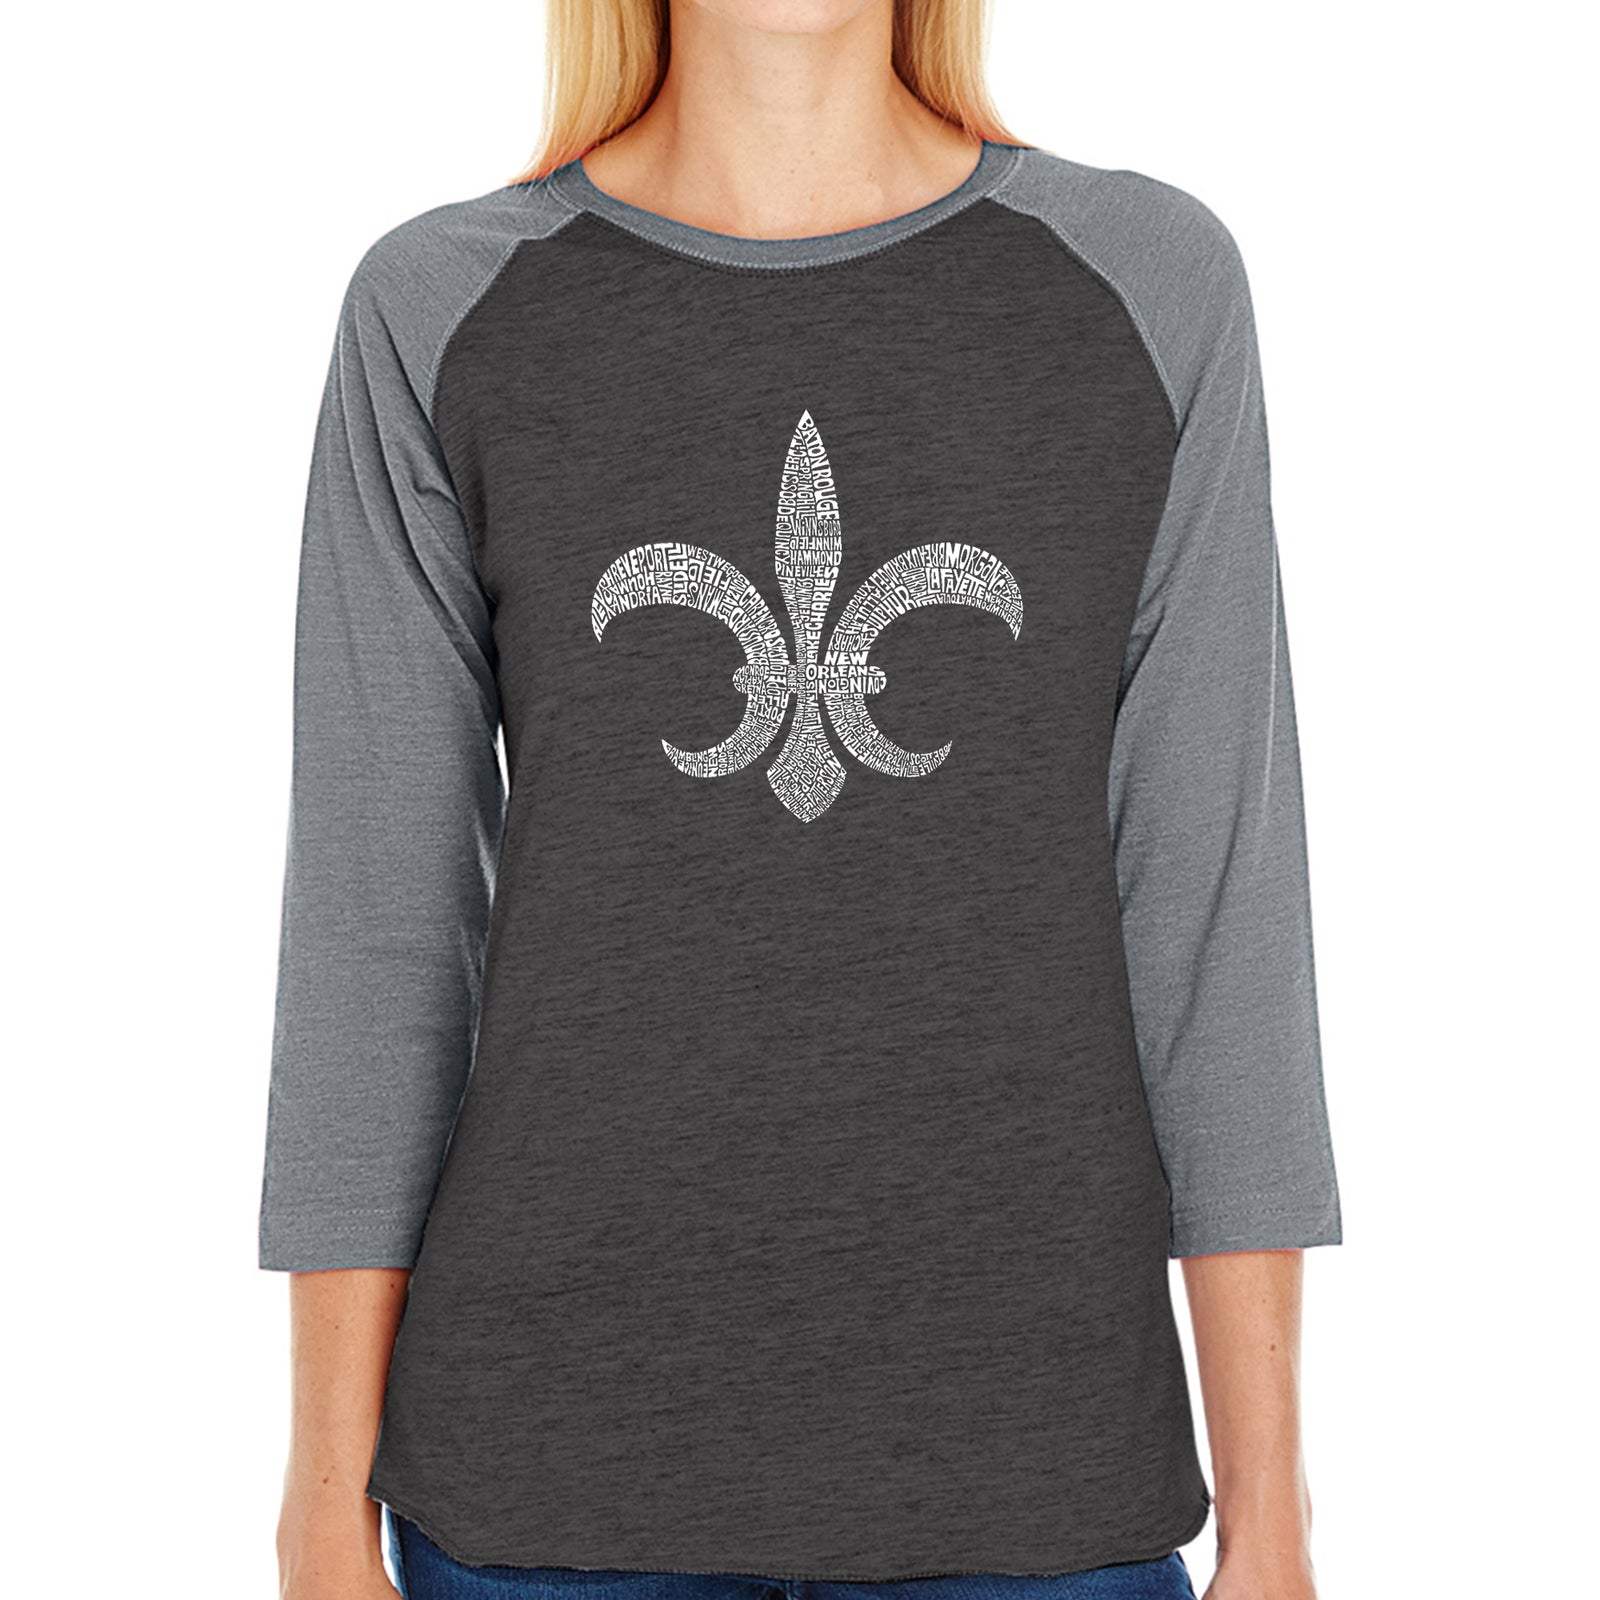 Women's Raglan Baseball Word Art T-shirt - FLEUR DE LIS - POPULAR LOUISIANA CITIES